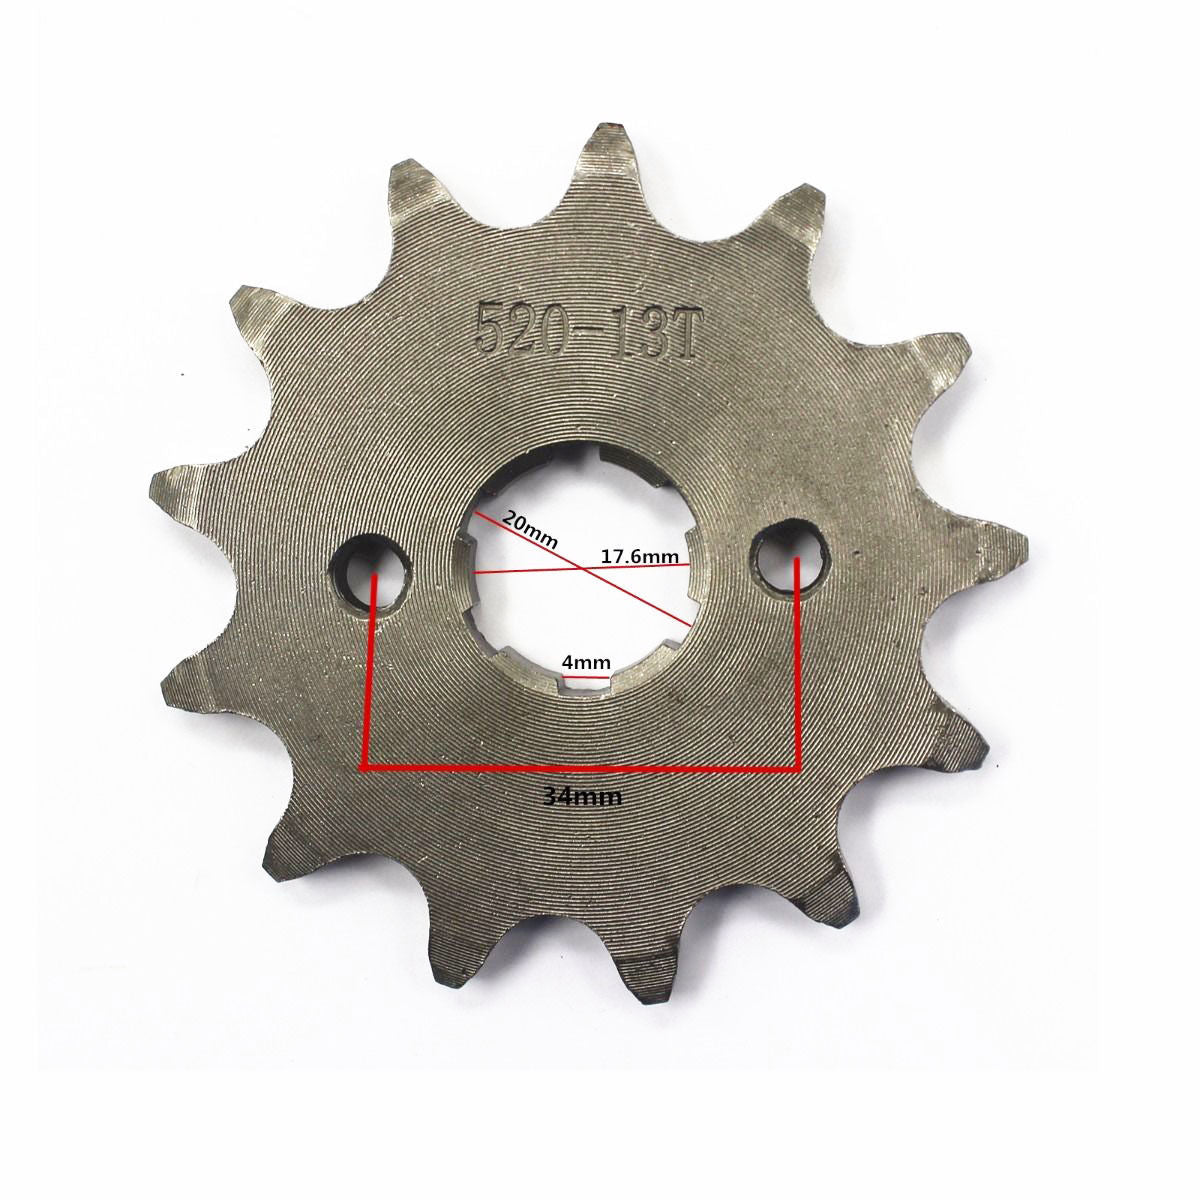 13T 20mm Front Engine Sprocket For 110cc 125cc KTM Rocket Honda Lifan 520 Chain